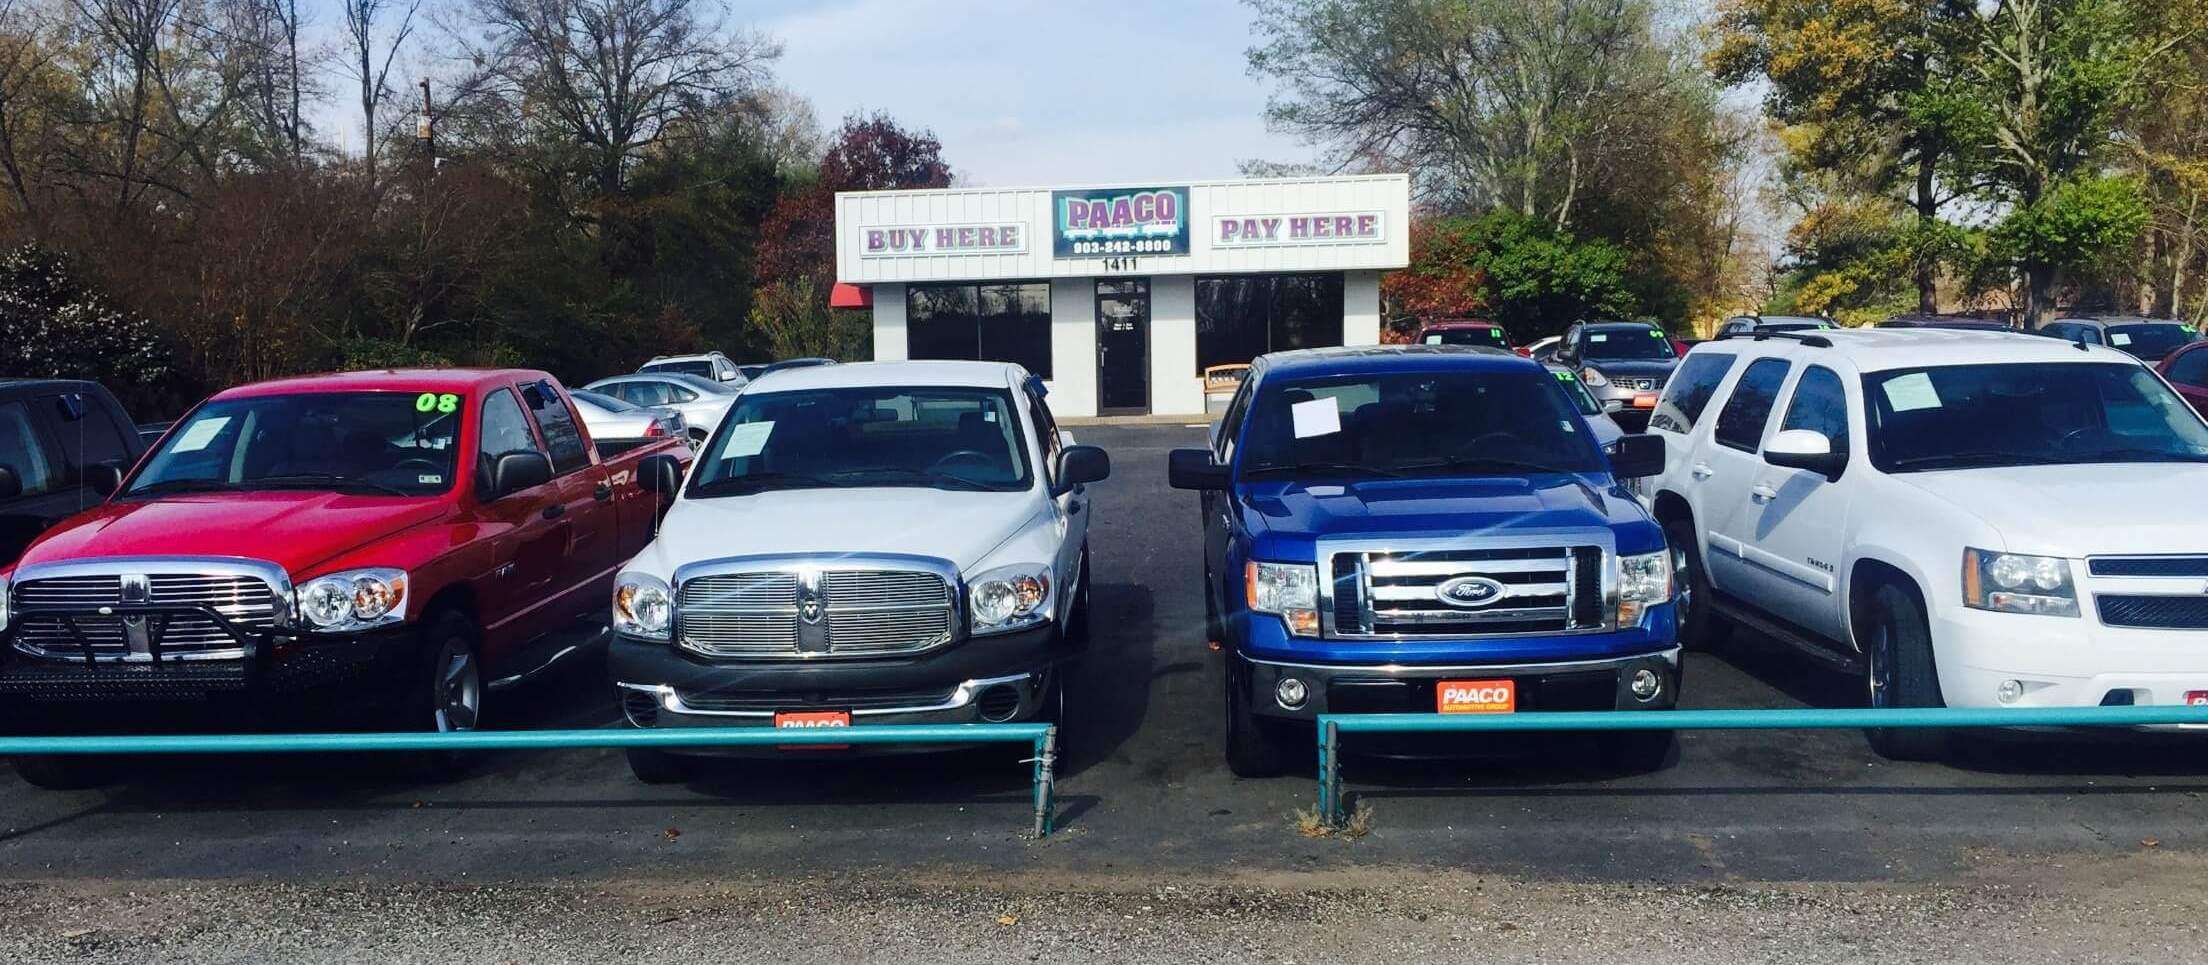 paaco car dealership longview texas